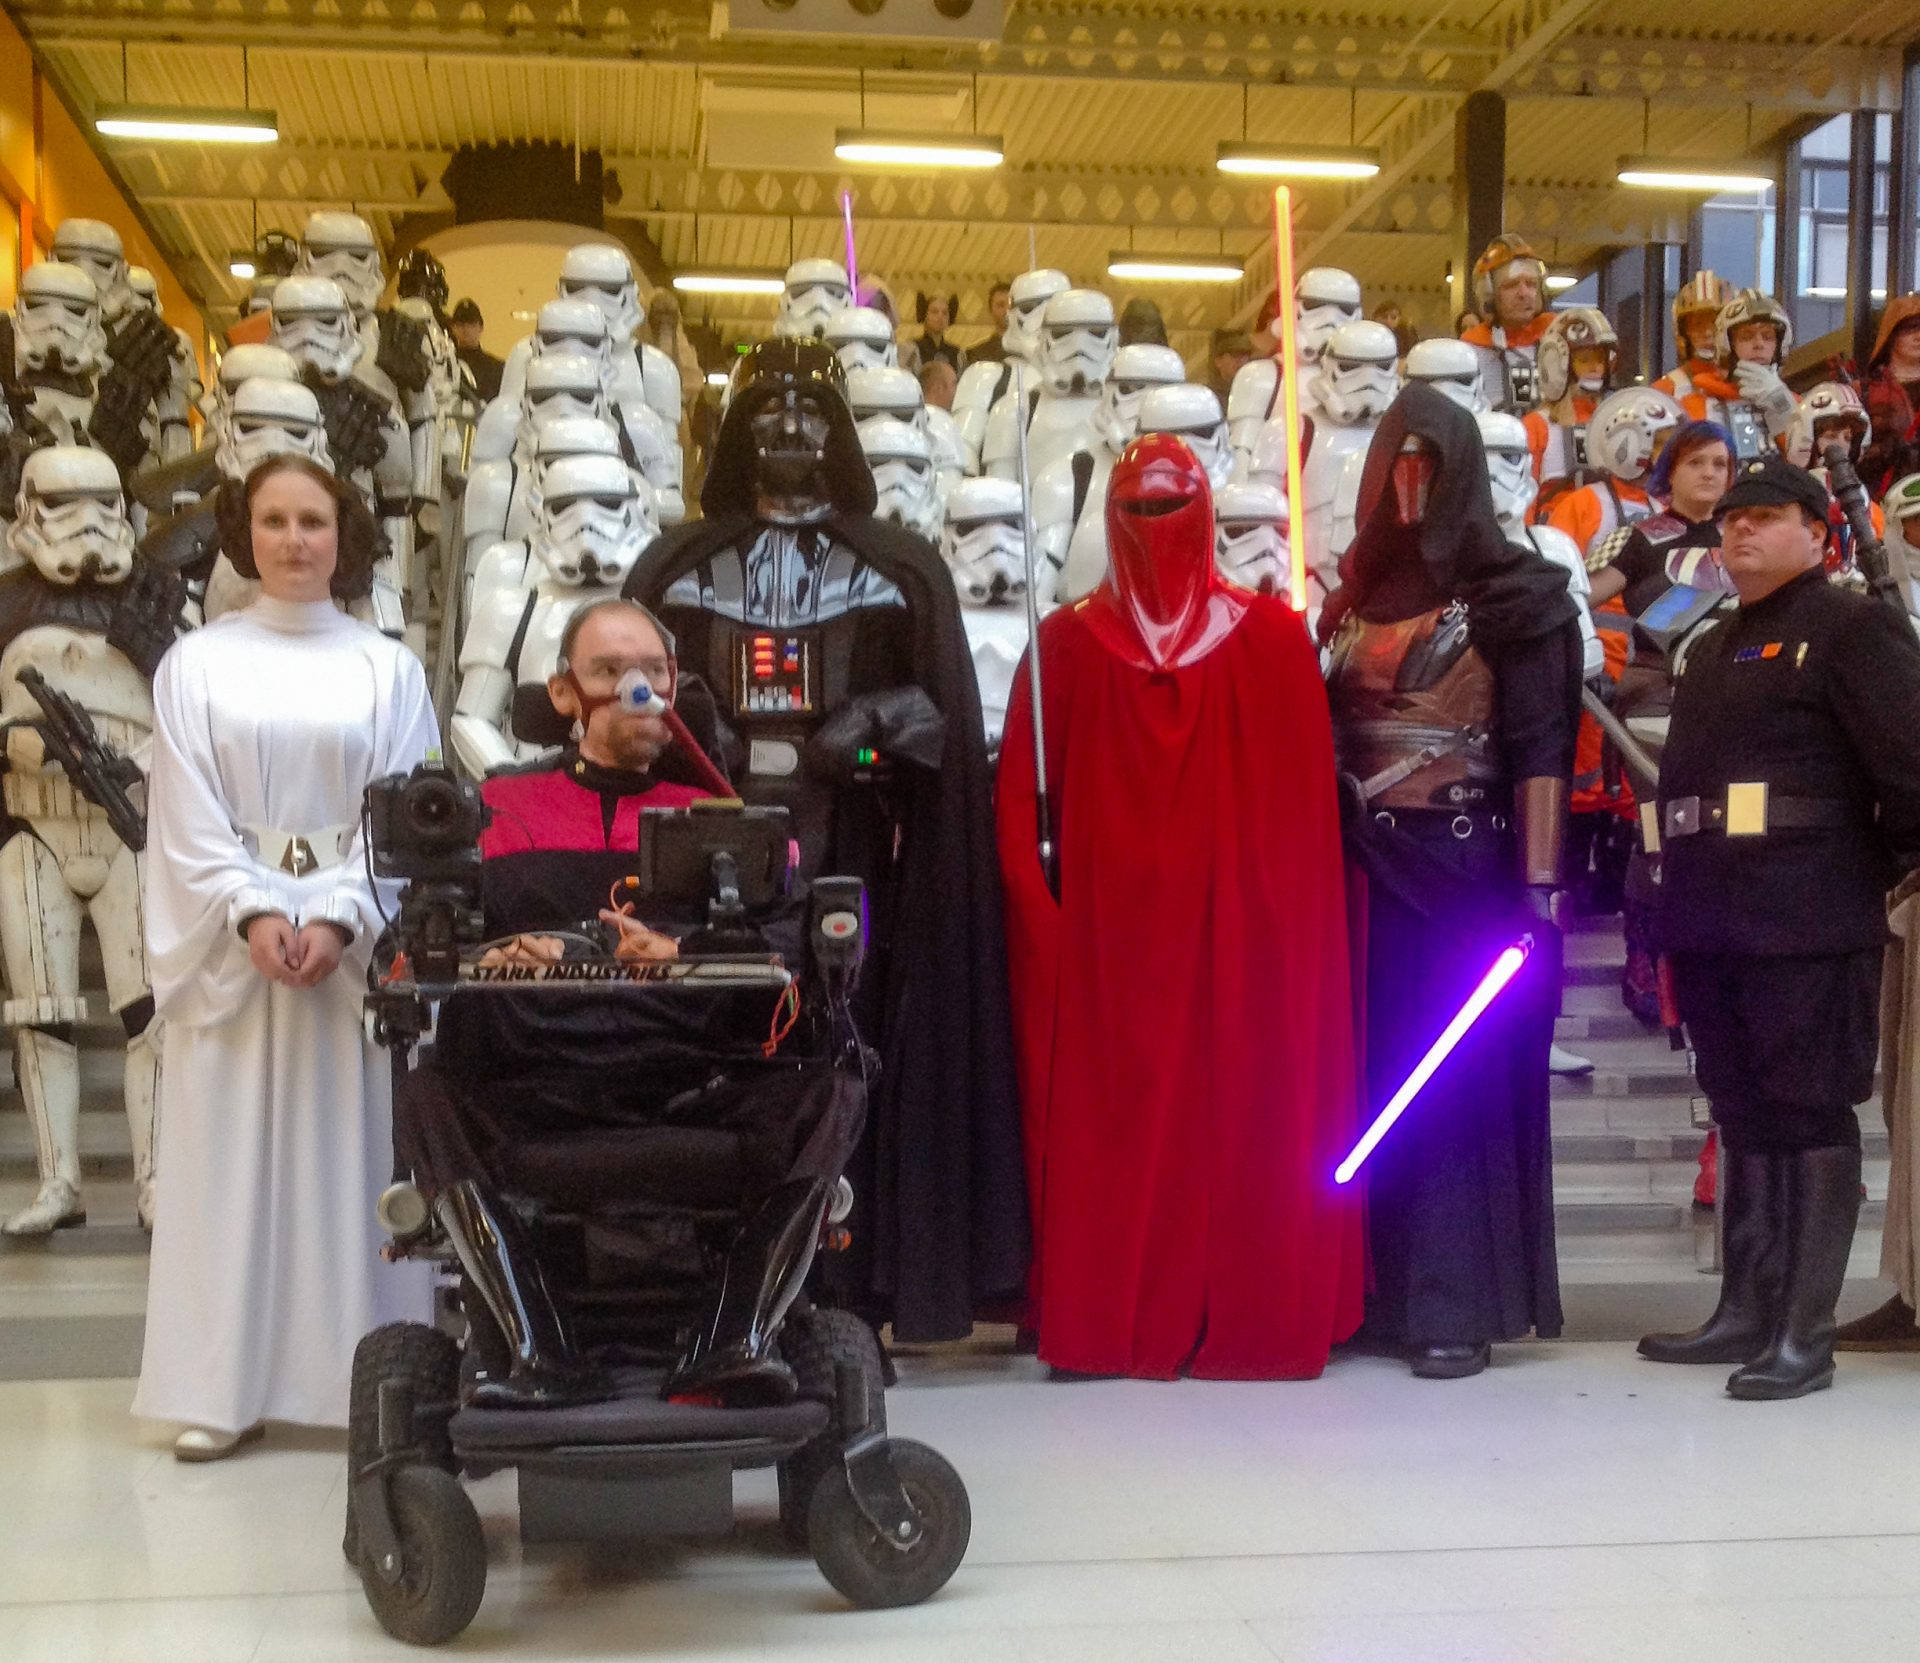 Daniel Baker in front of a battalion of Imperial troops with a handcuffed Princess Leia beside him, Daniel is dressed in a Star Trek uniform